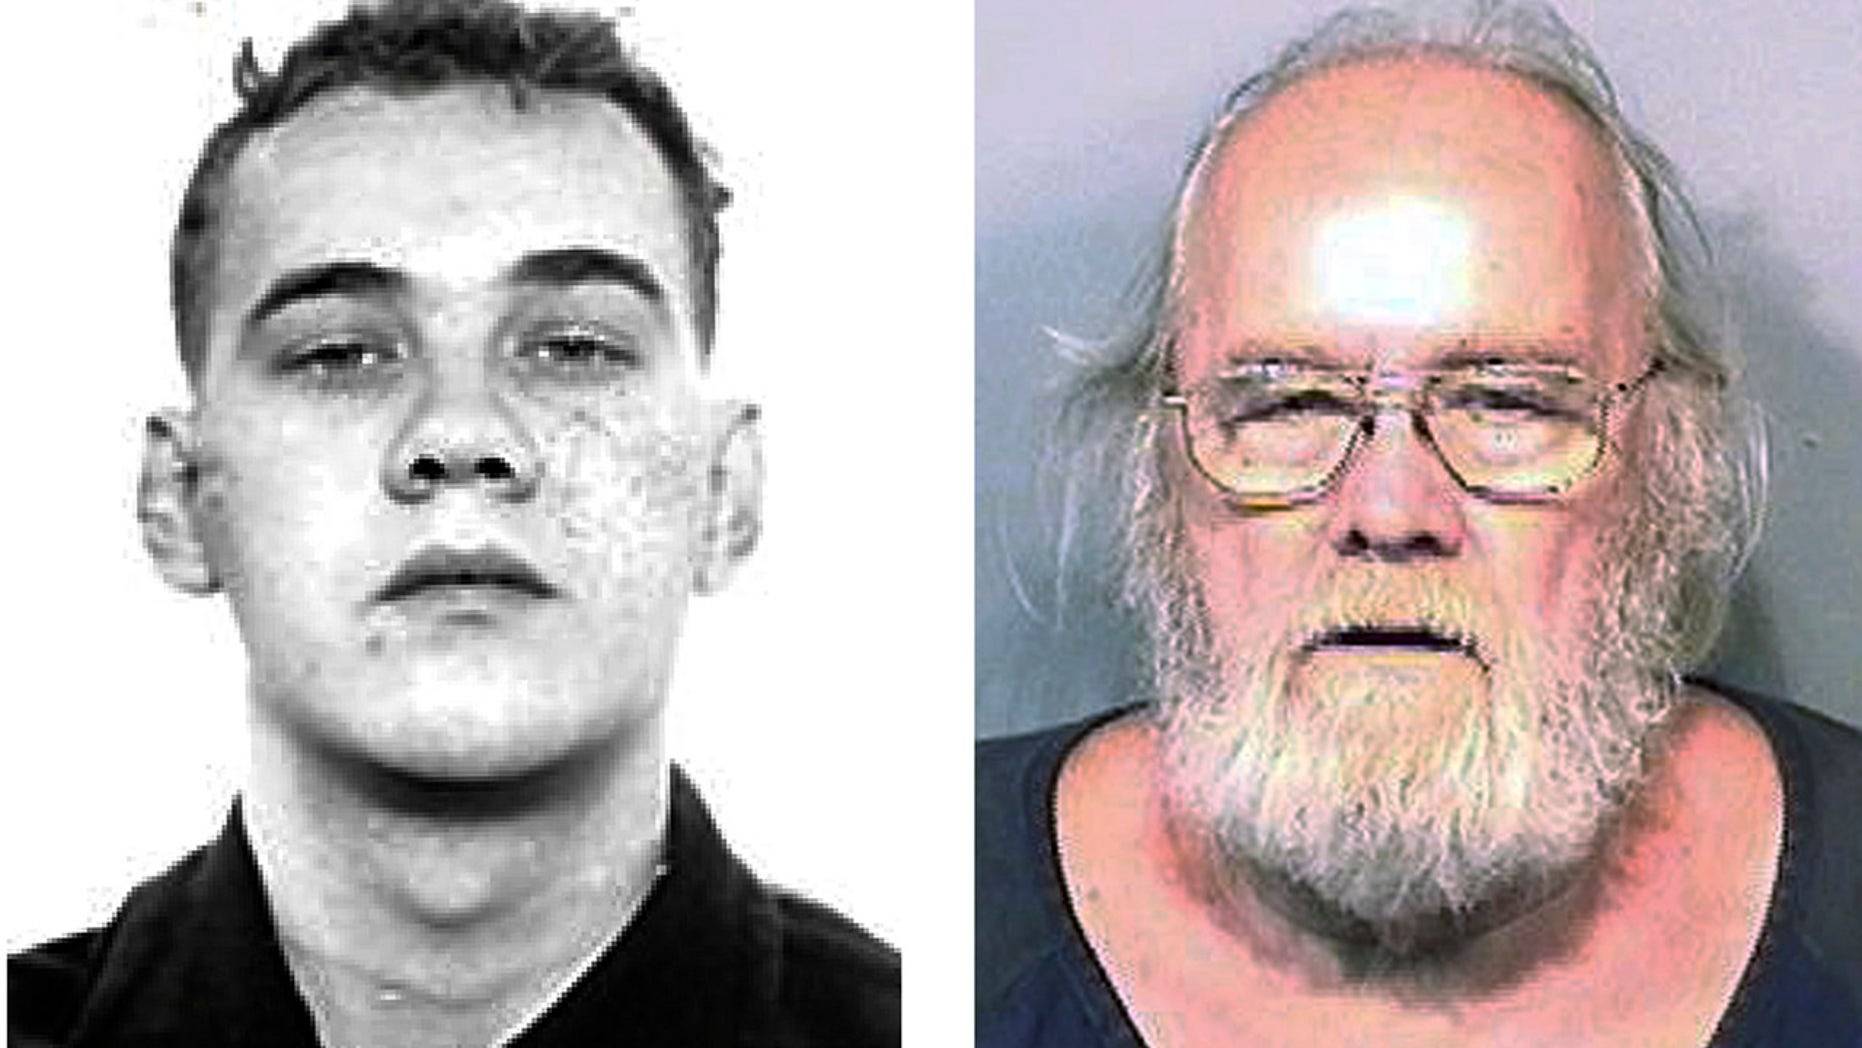 FILE - This pair of photos shows Frank Freshwaters, left, in a Feb. 26, 1959, Ohio State Reformatory photo released by the U.S. Marshals Service, and right, in a May 4, 2015, booking photo released by the Brevard County Sheriff's Office in Florida. (Ohio State Reformatory and Brevard County Sheriff's Office via AP, File)